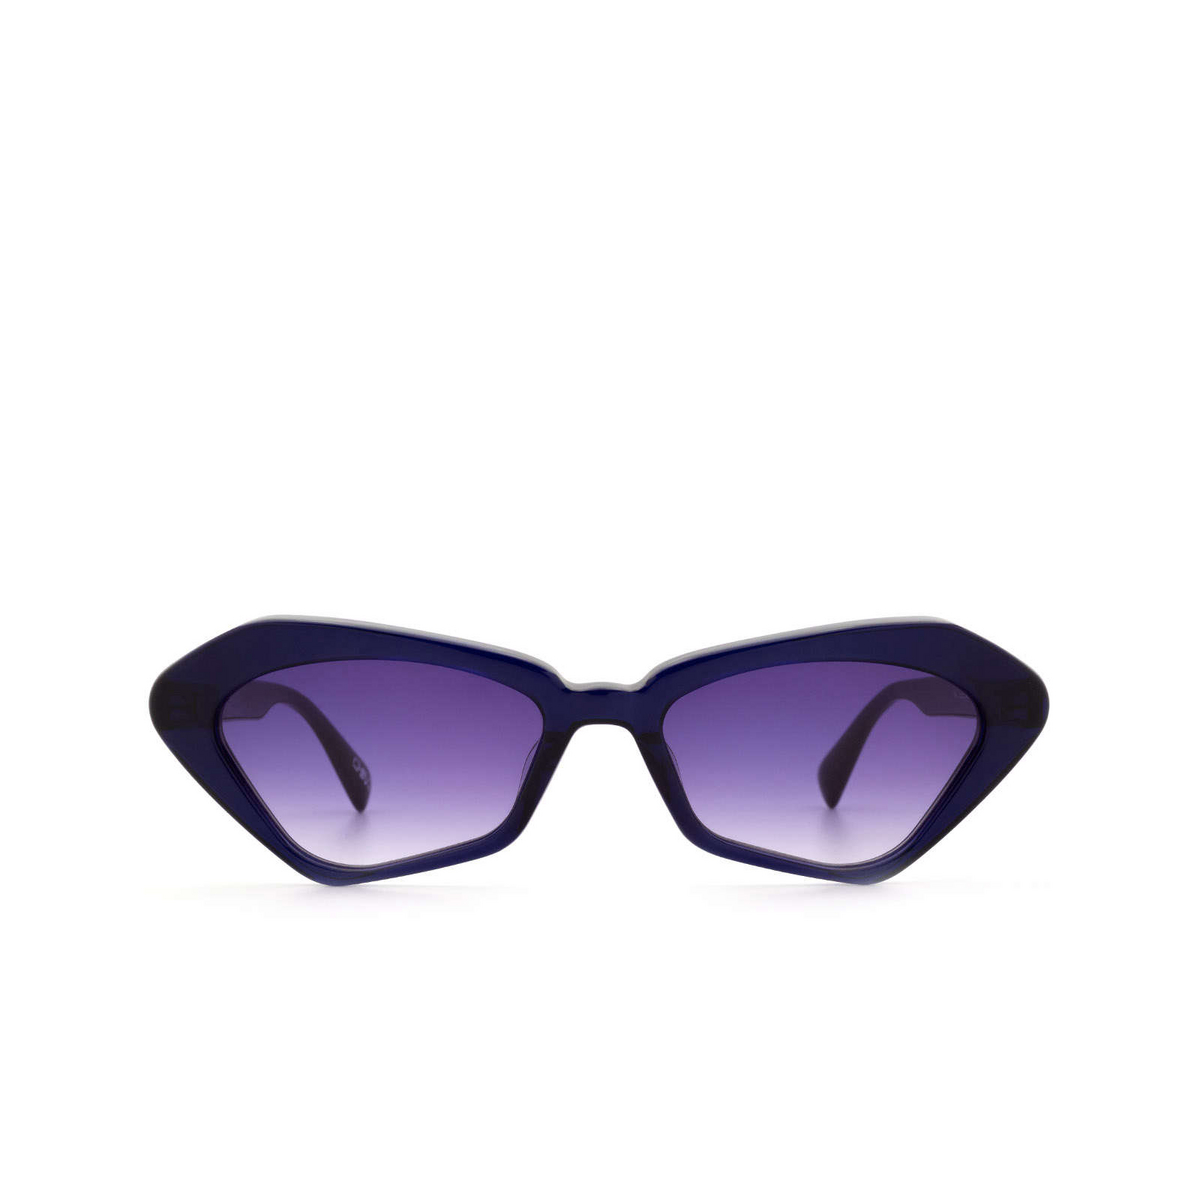 Chimi® Irregular Sunglasses: Space Melted Star color Blue Nebula - front view.